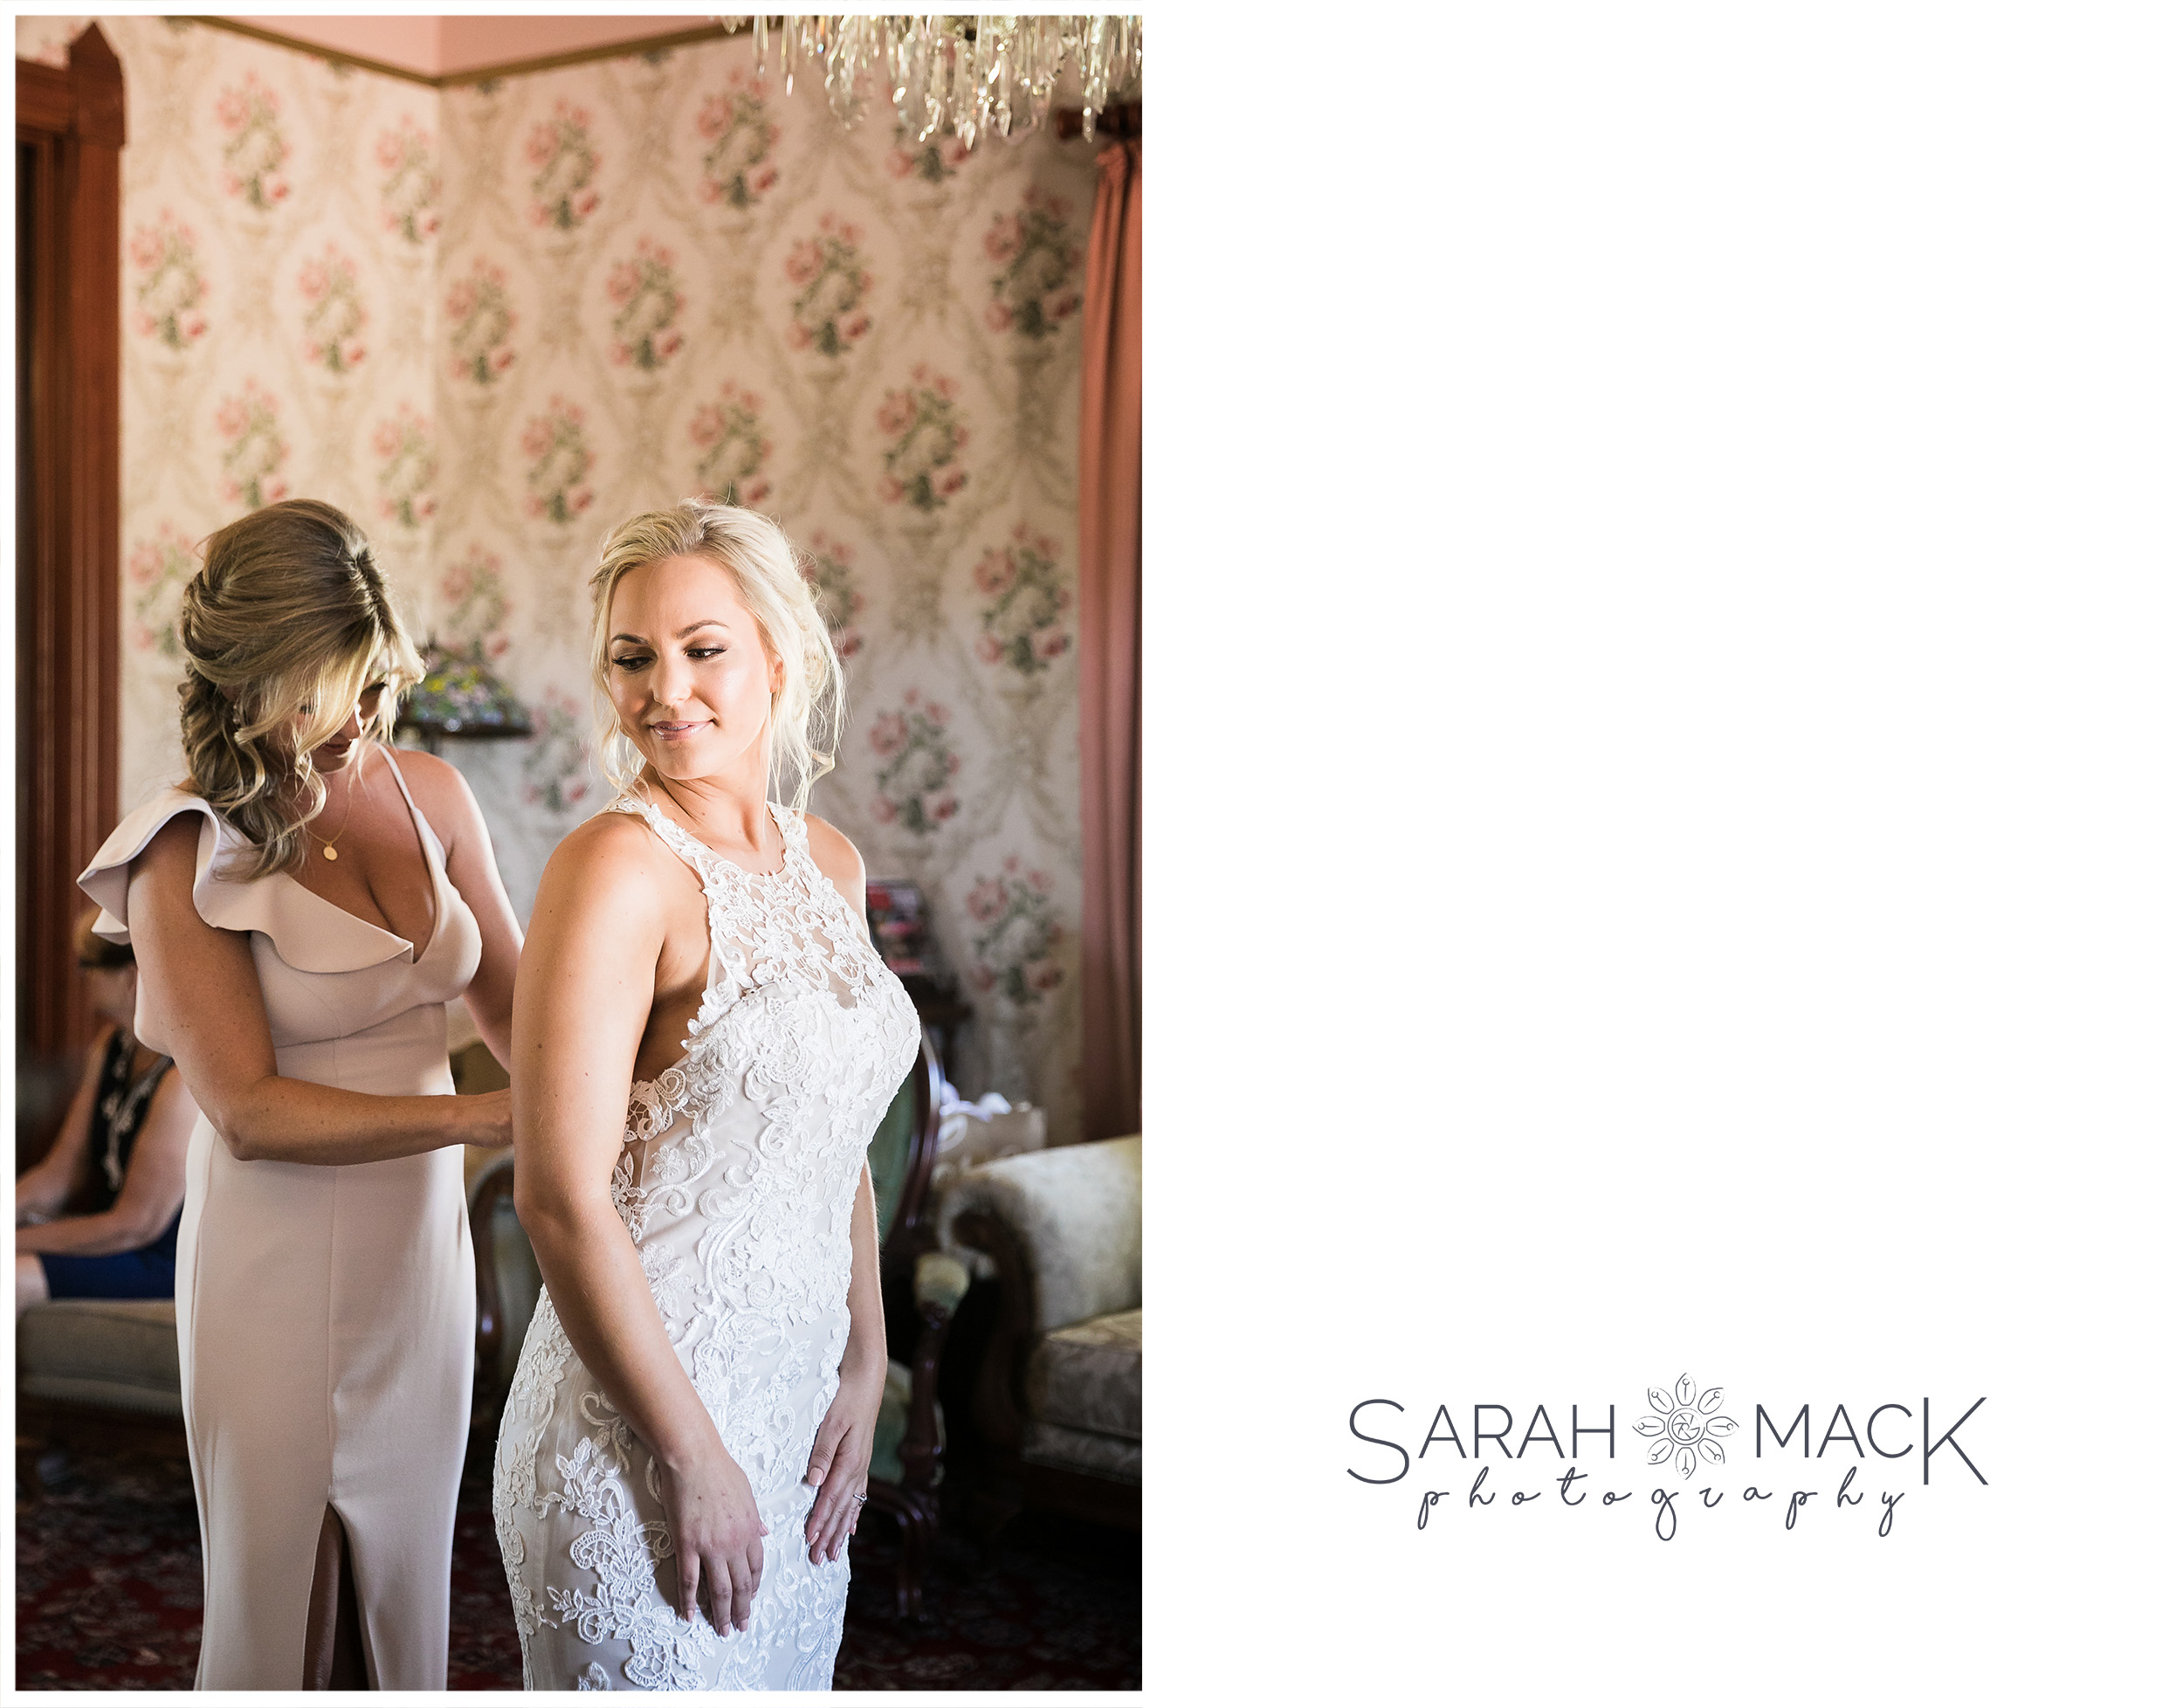 MA-Chandler-Ranch-Paso-Robles-Wedding-Photography-11.jpg